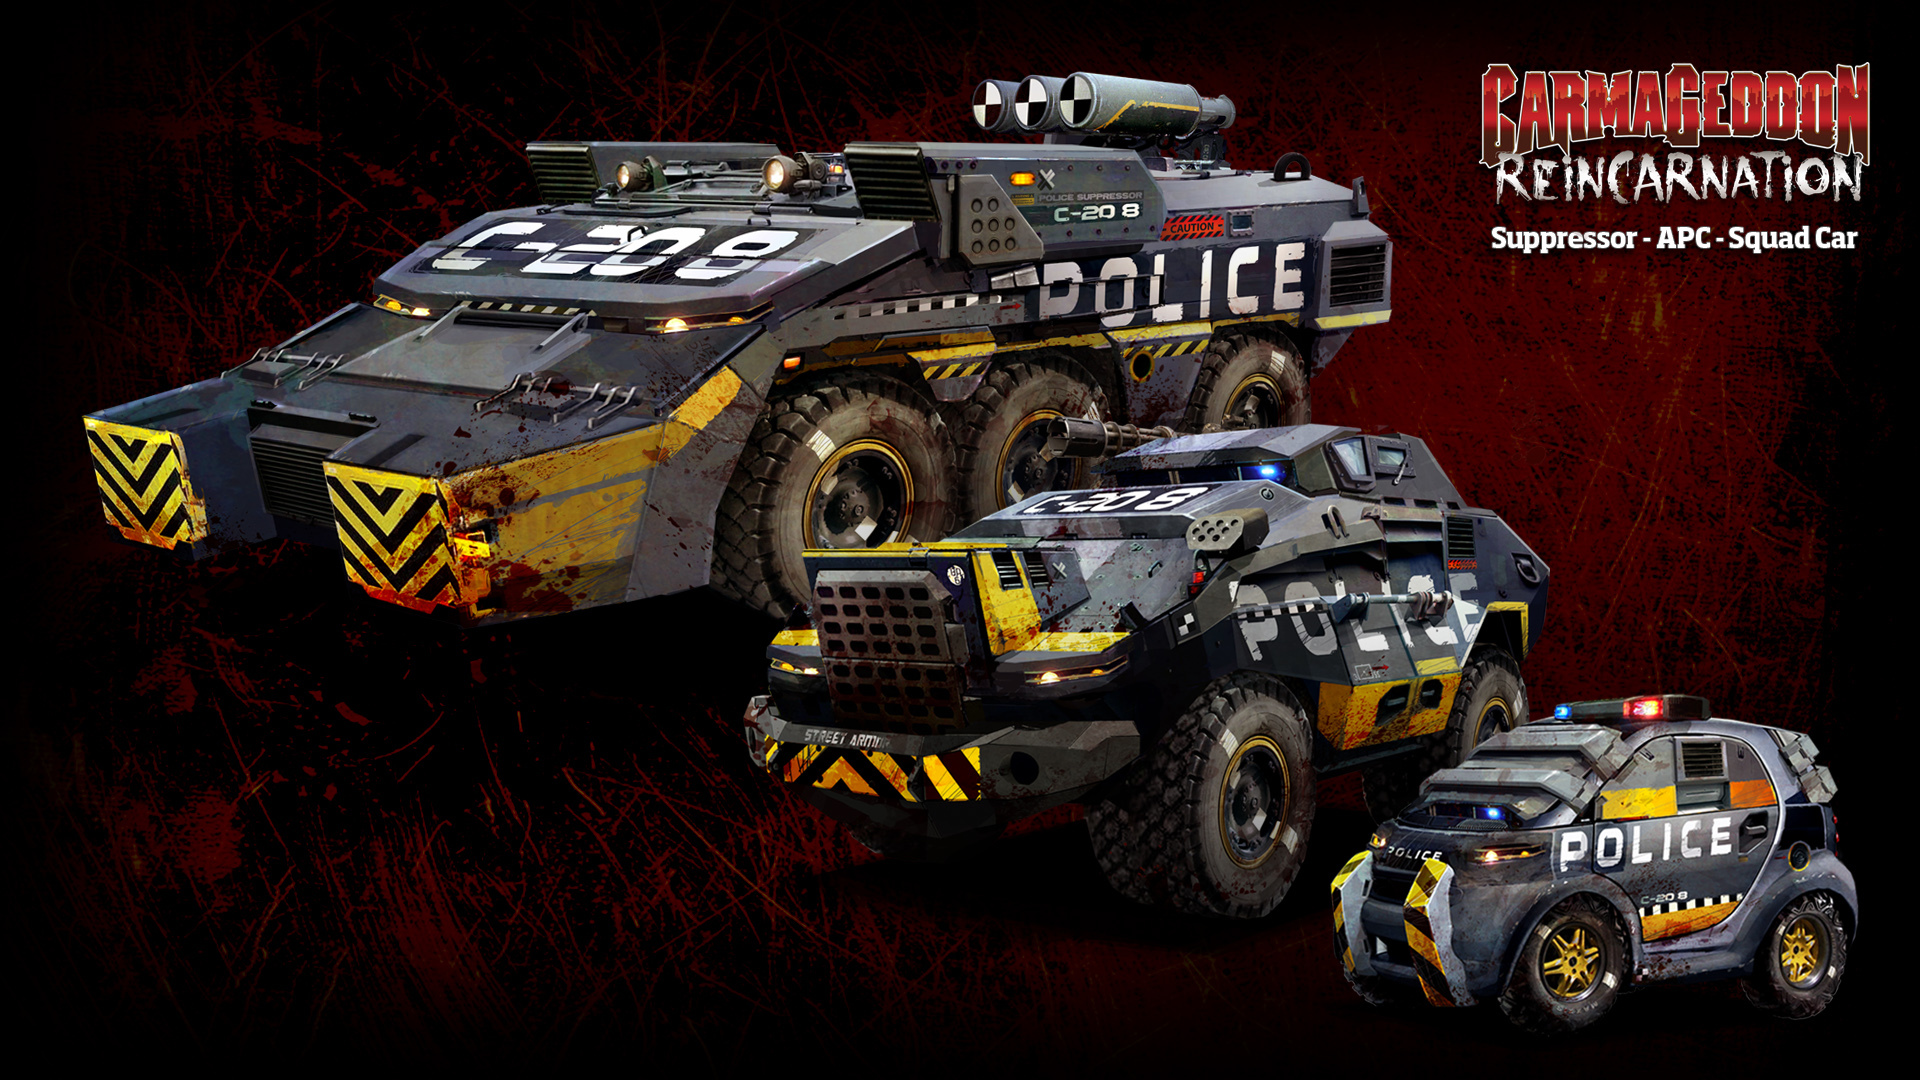 Download wallpaper The game Game Cars Carmageddon Reincarnation 1920x1080